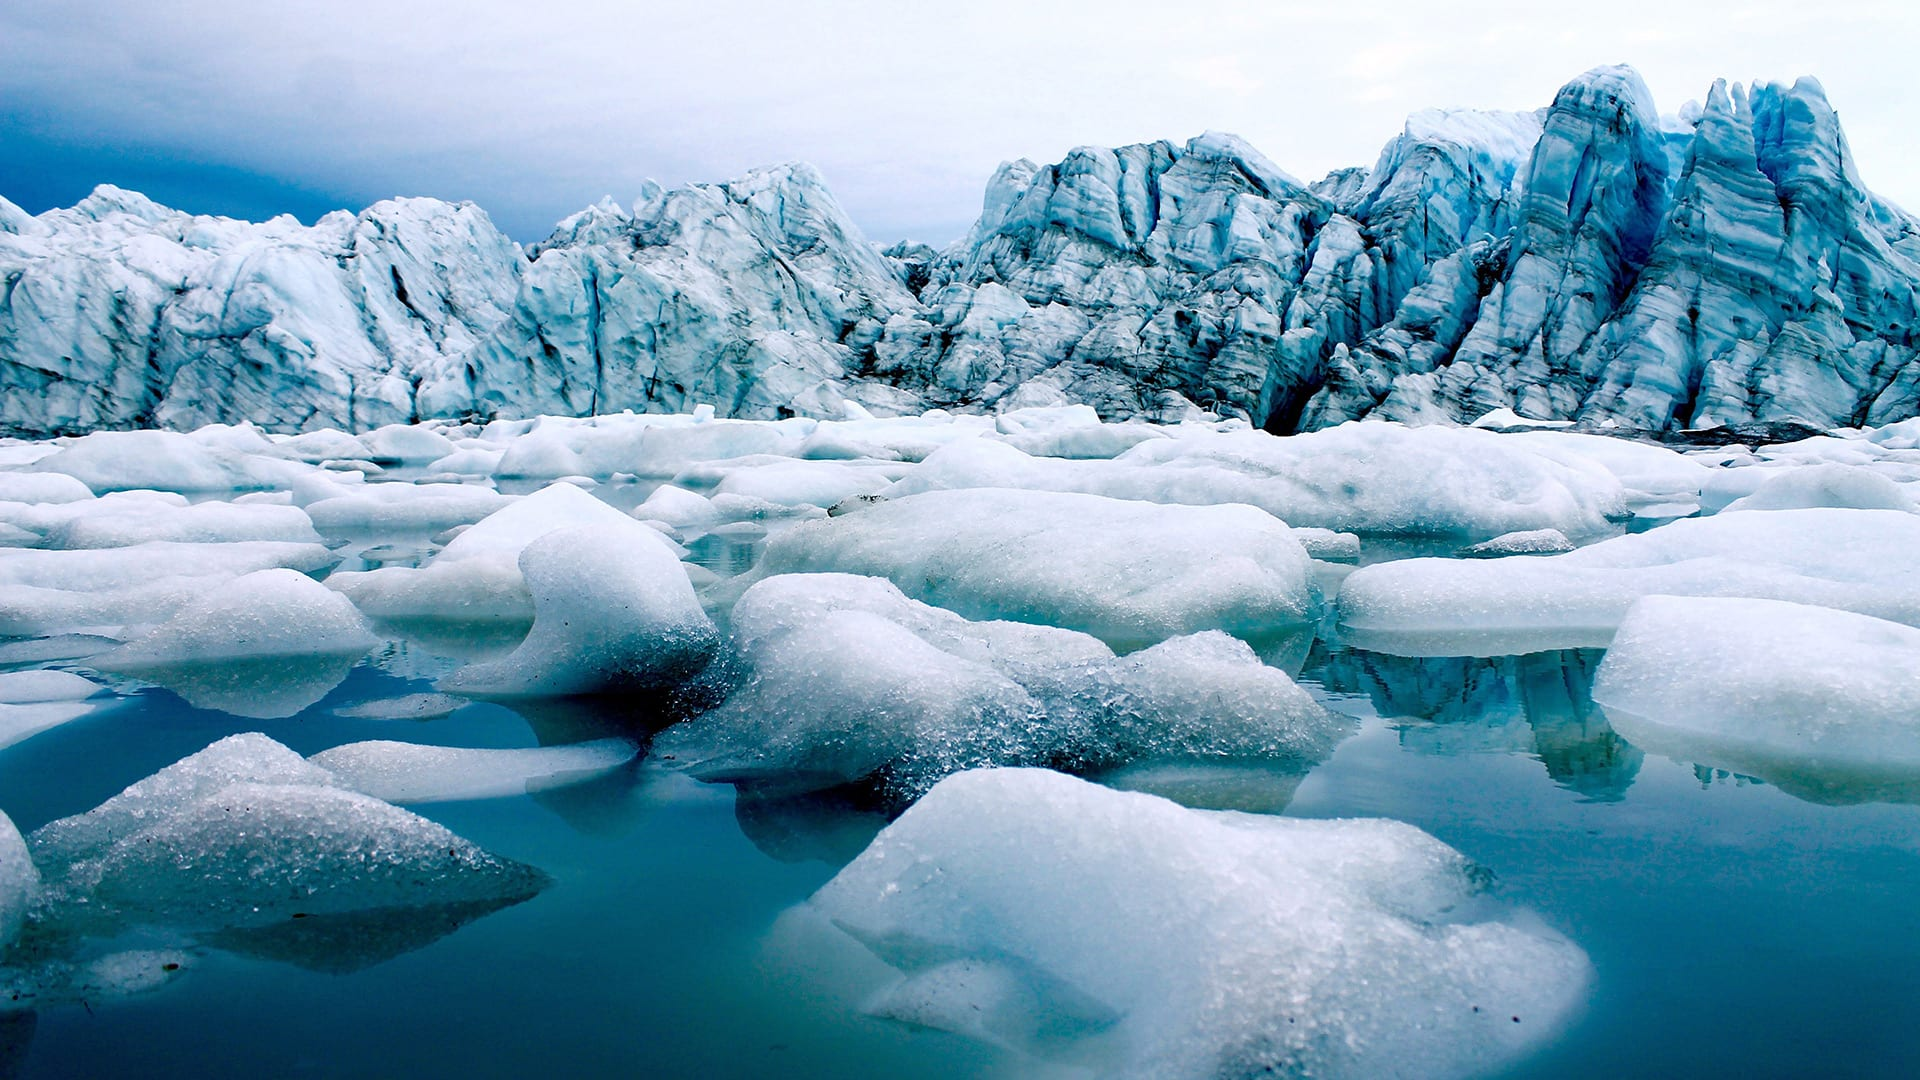 Arctic ice loss—Summertime ice melt along the Greenland Ice Sheet has sped up in recent decades, with more fresh water flowing into the surrounding ocean. Photo by Matt Osman, WHOI.